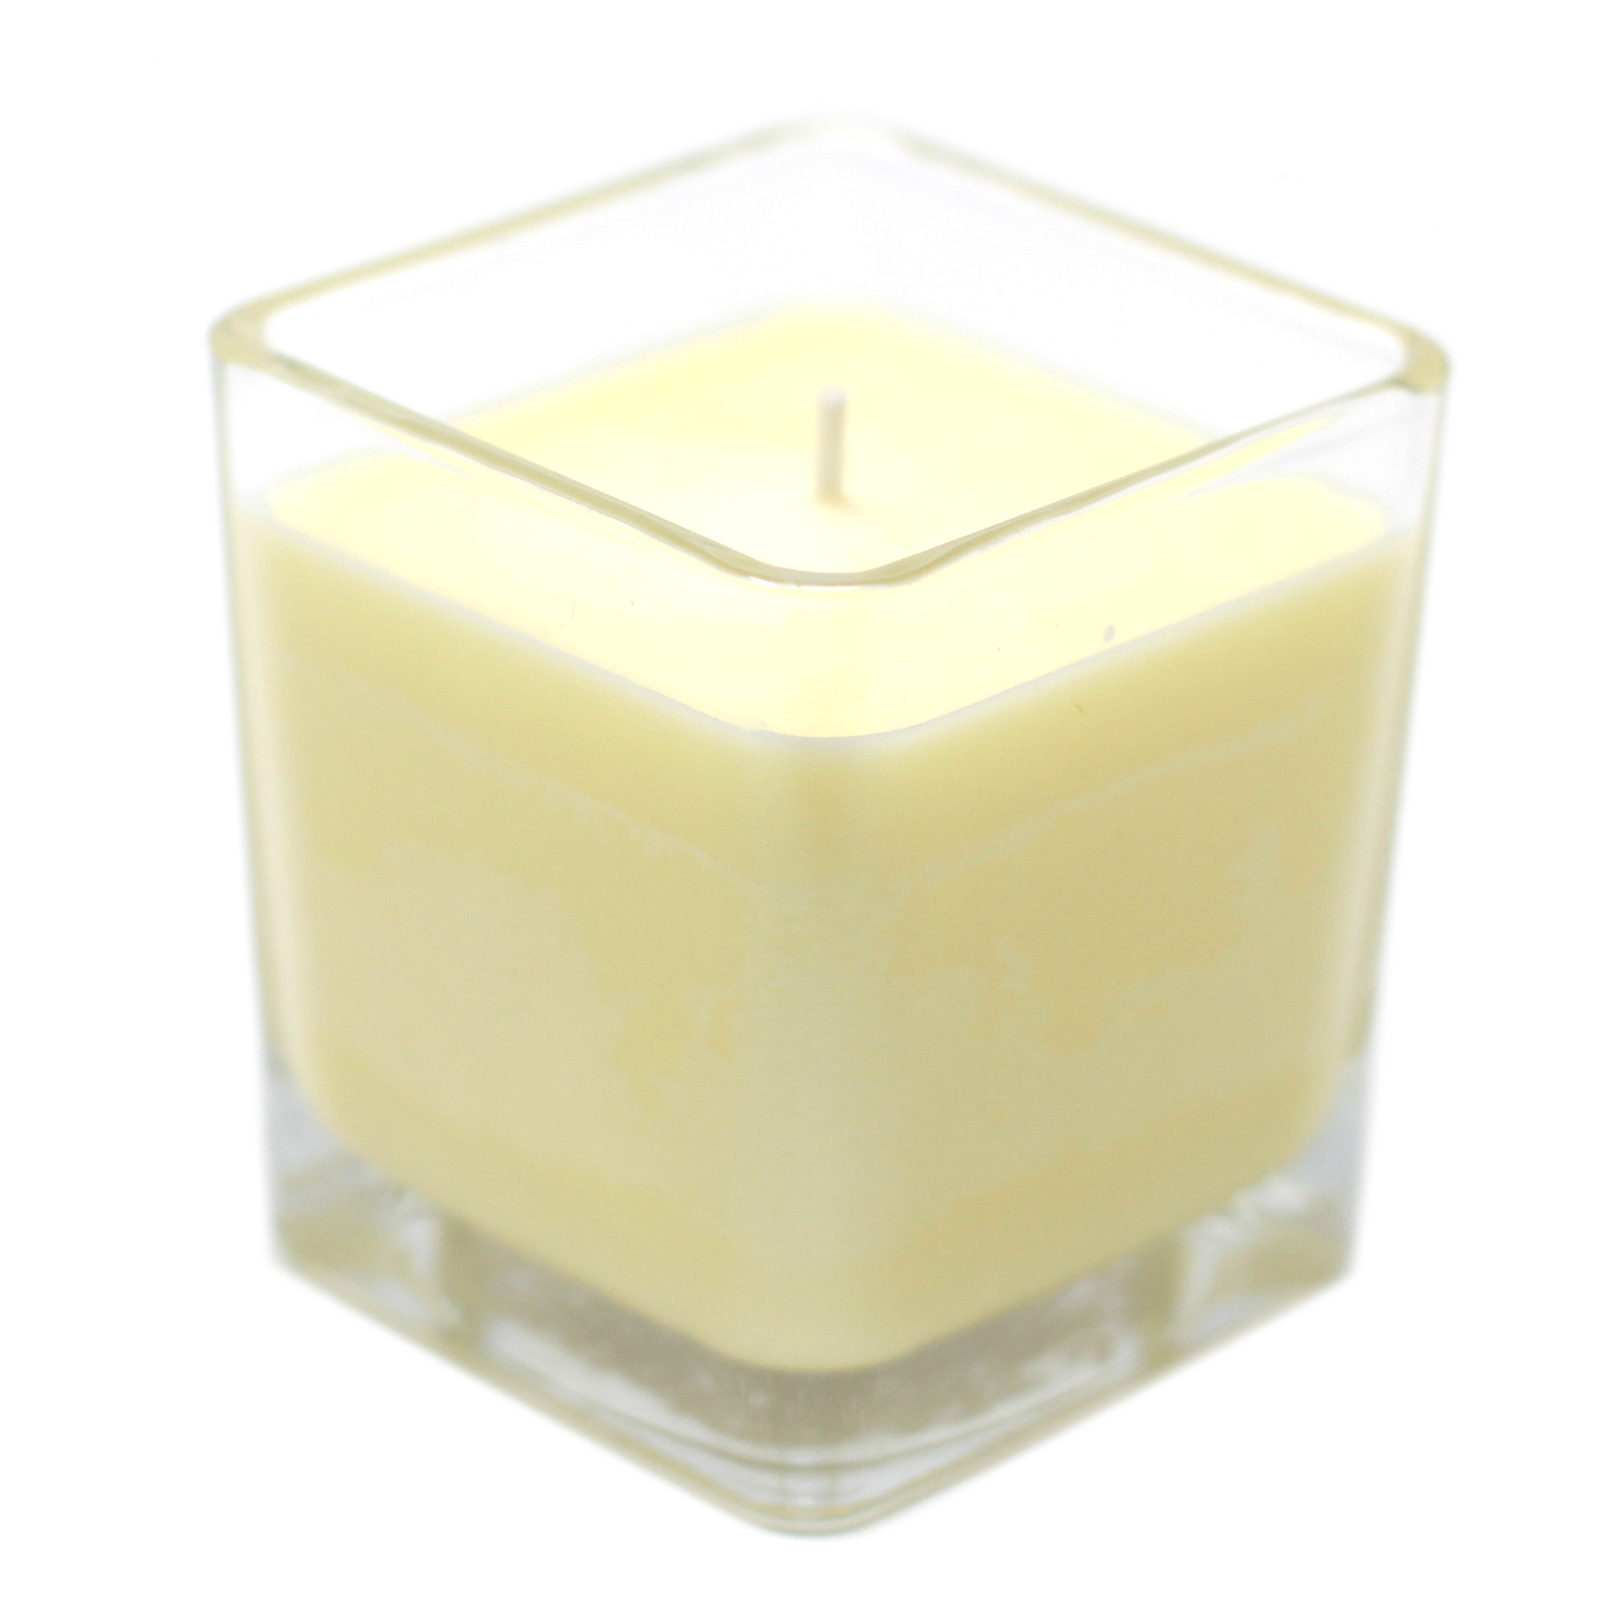 White Label Soy Wax Jar Candle Home Bakery